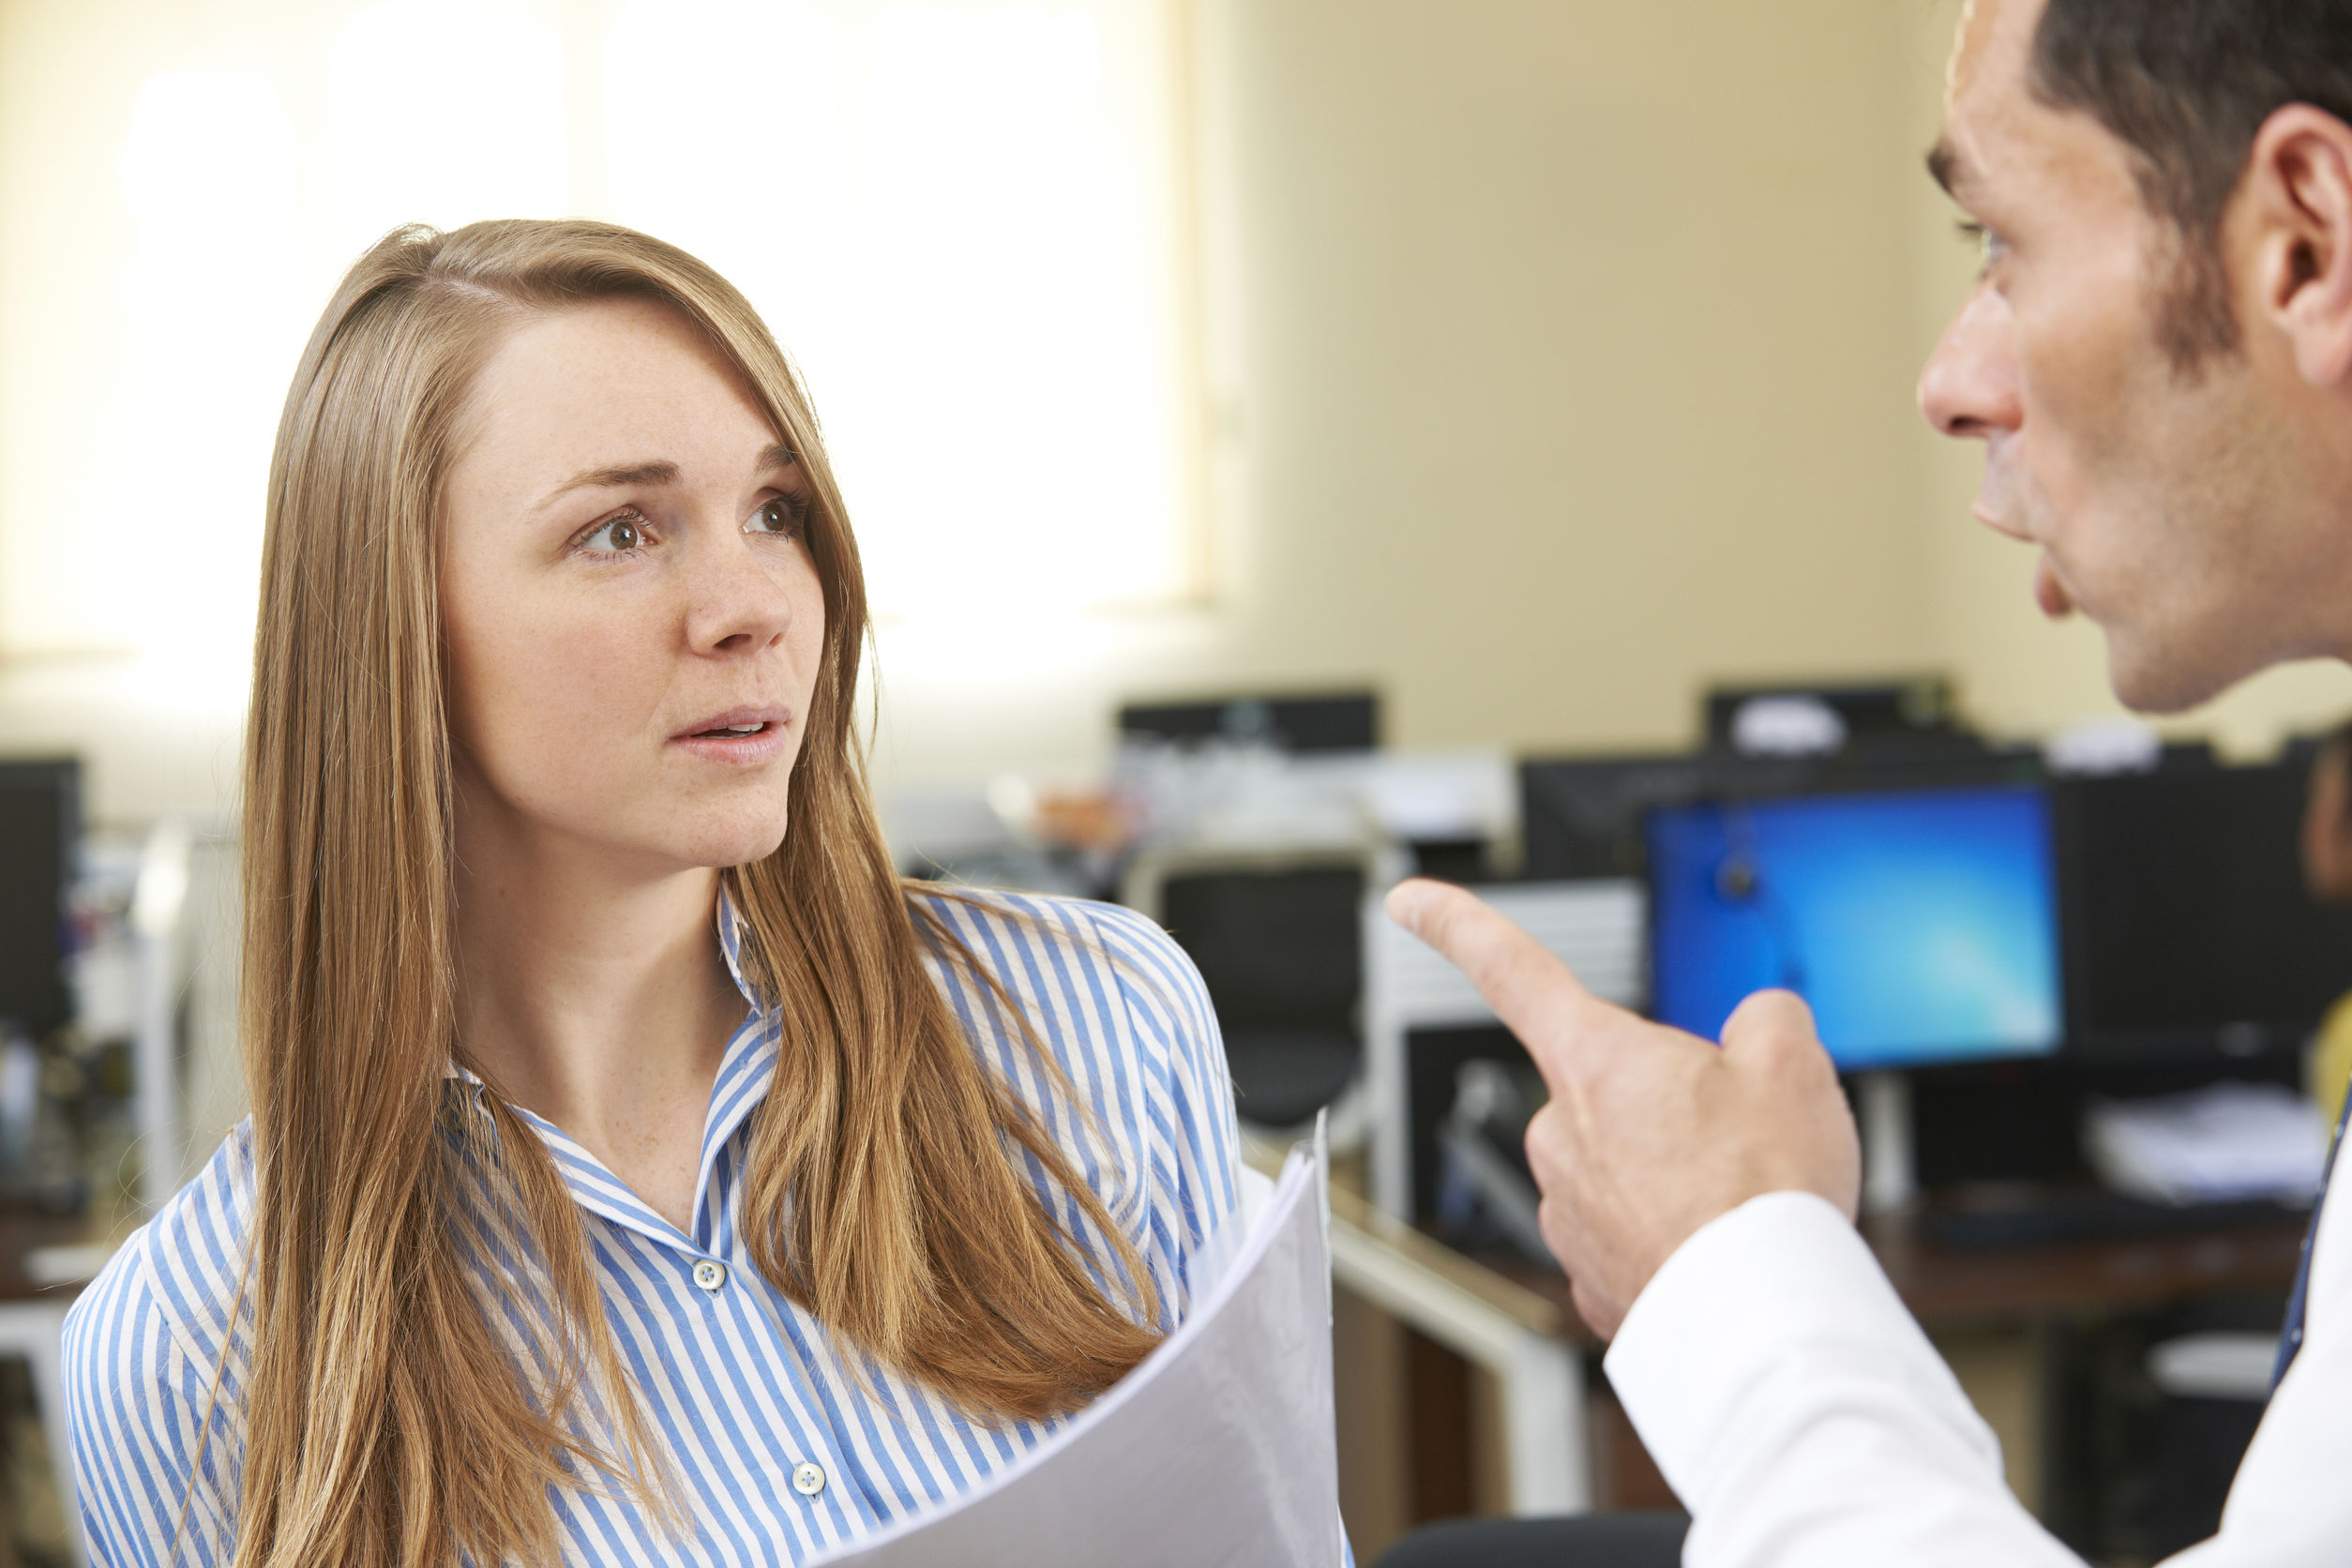 What are the signs of bullying in the workplace?